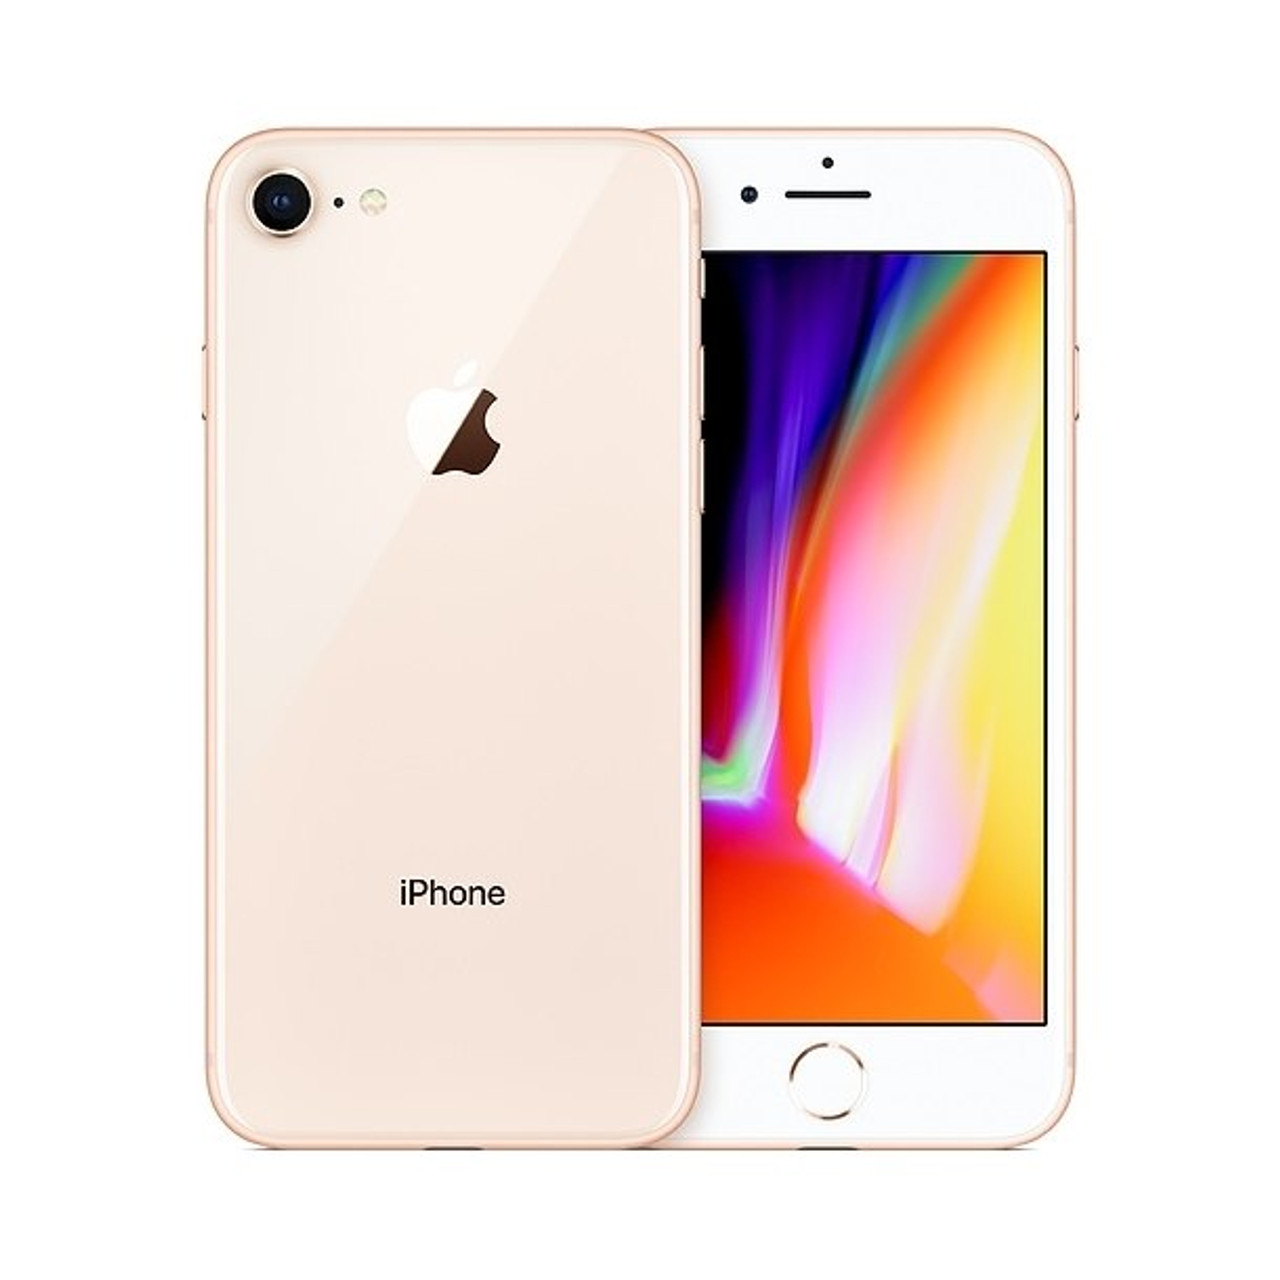 Apple iPhone 8 (GSM Unlocked) 64GB Gold MQ6X2LL/A - Excellent Condition